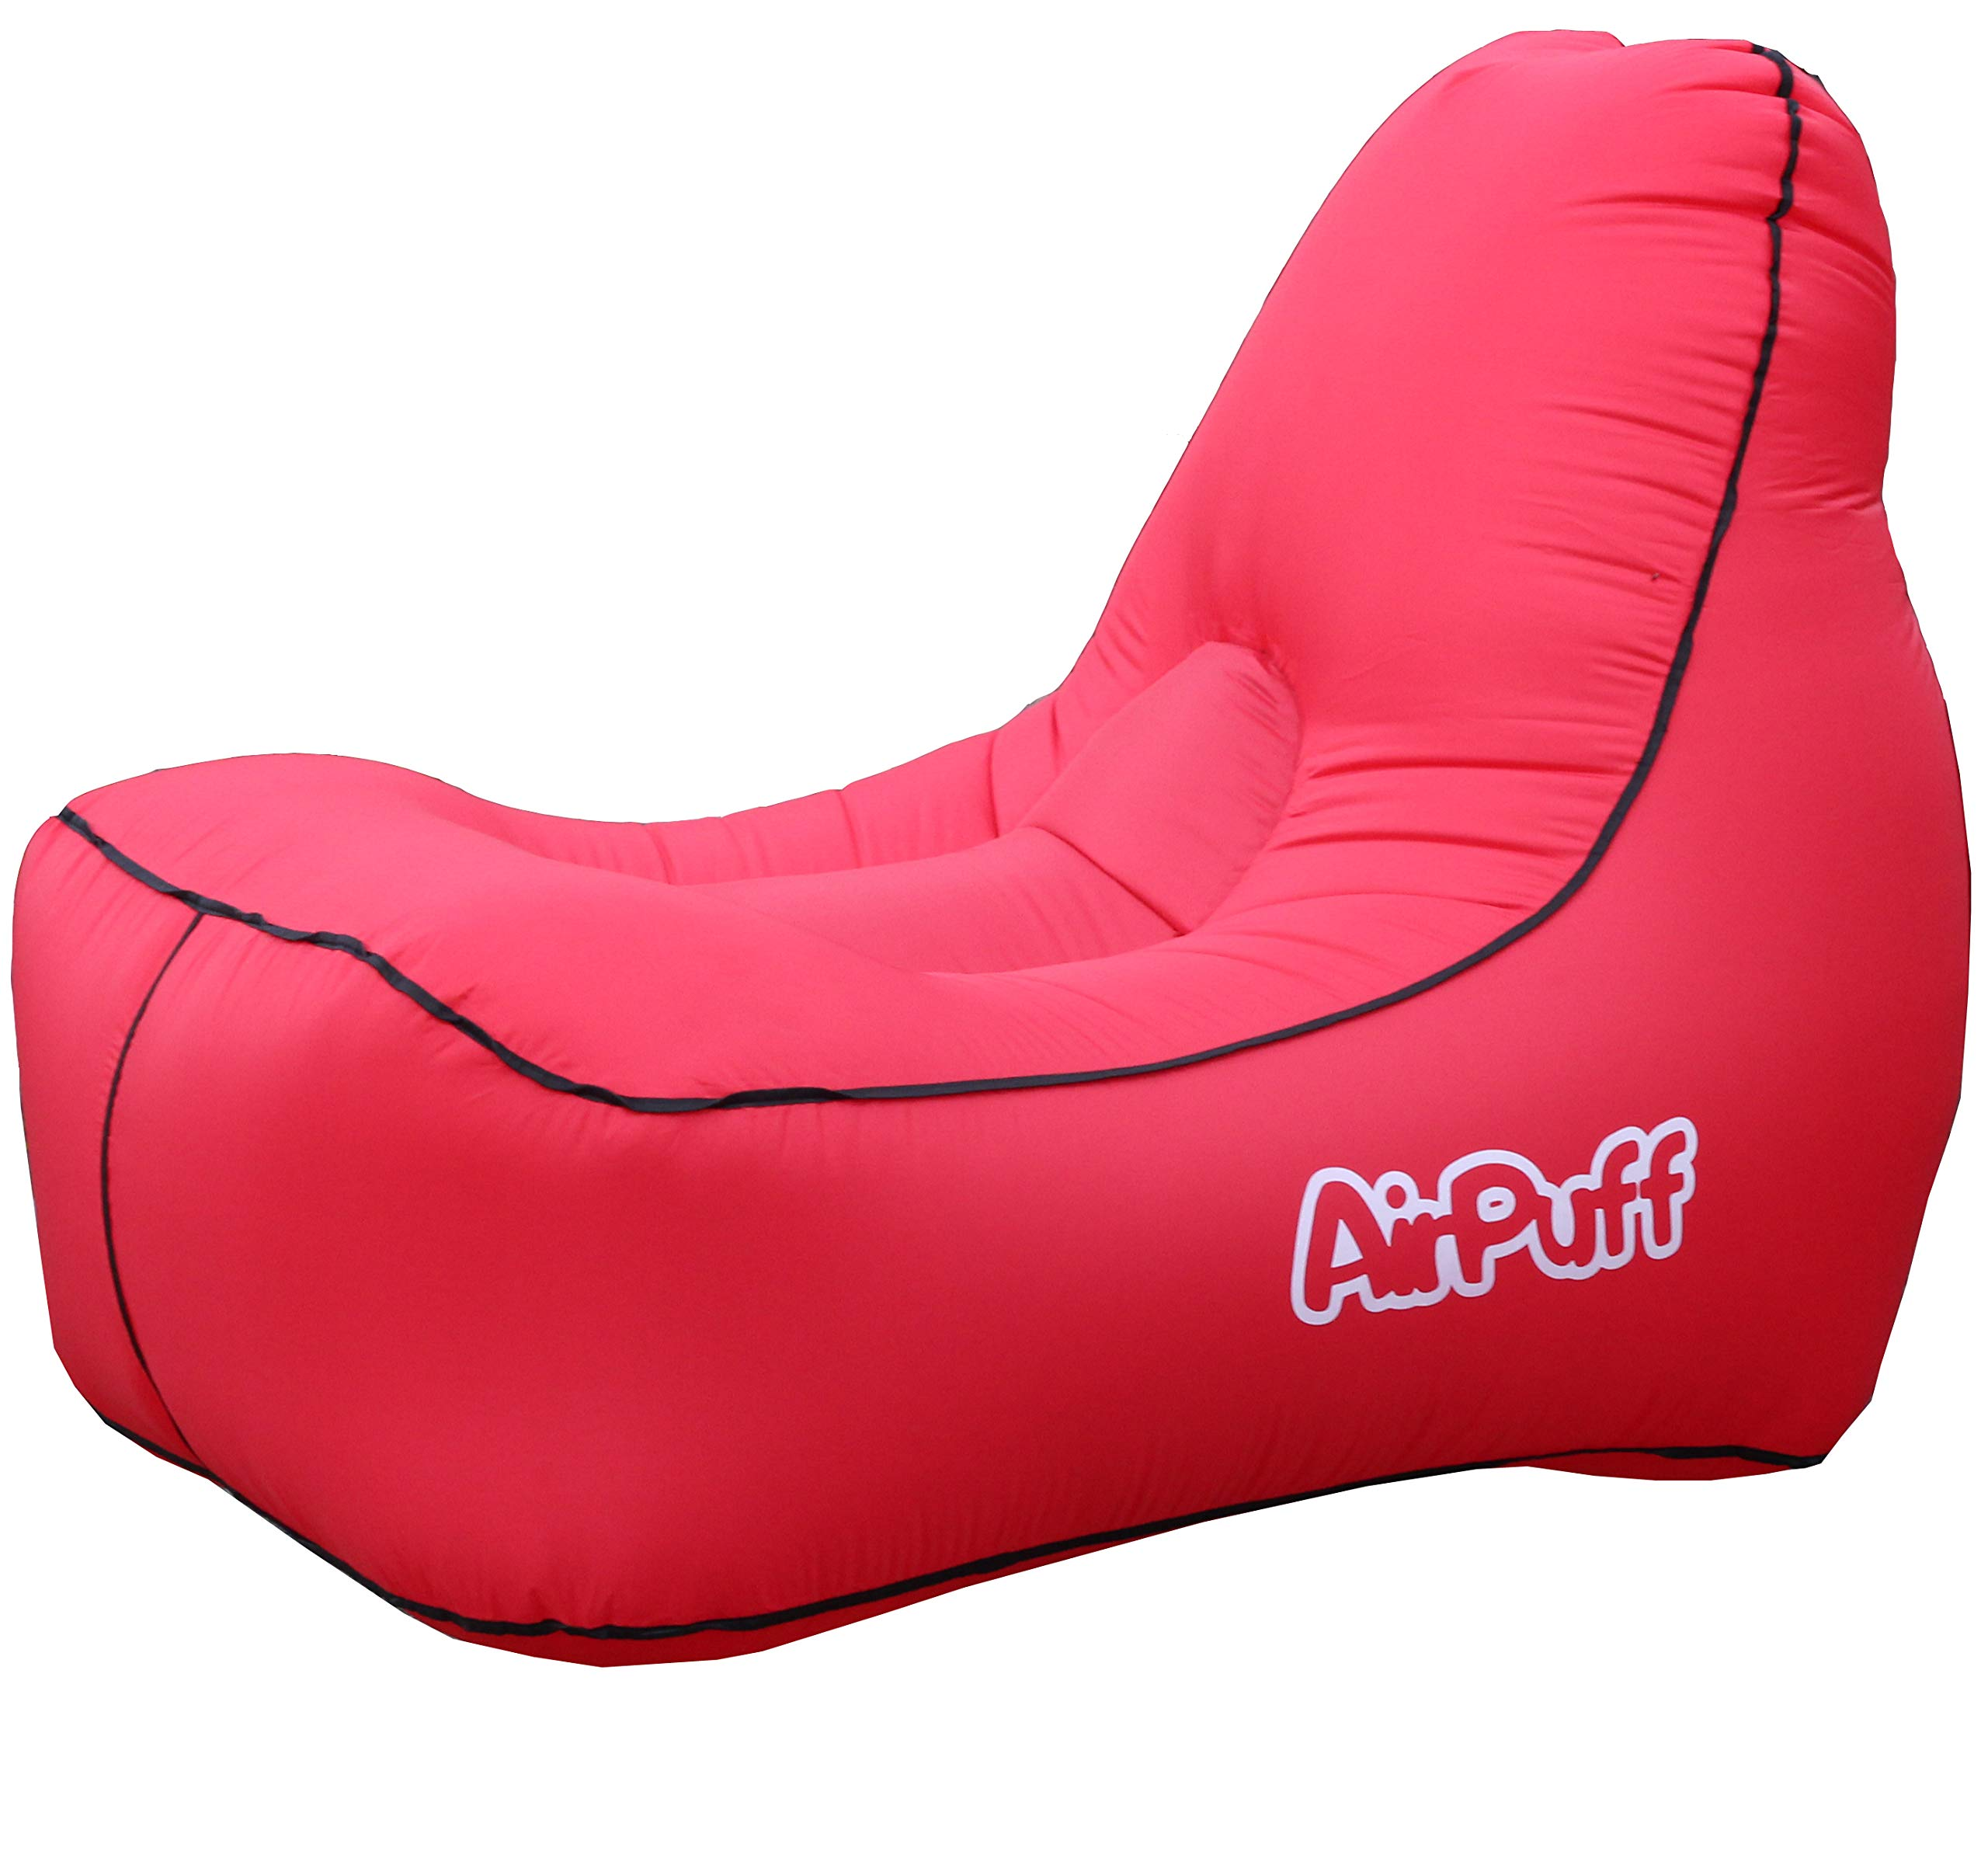 AirPuff Inflatable Lounge Chair Outdoor for Beach, Travel, Lawn - Comfortable Lazy Chair Lounger Portable (Red)